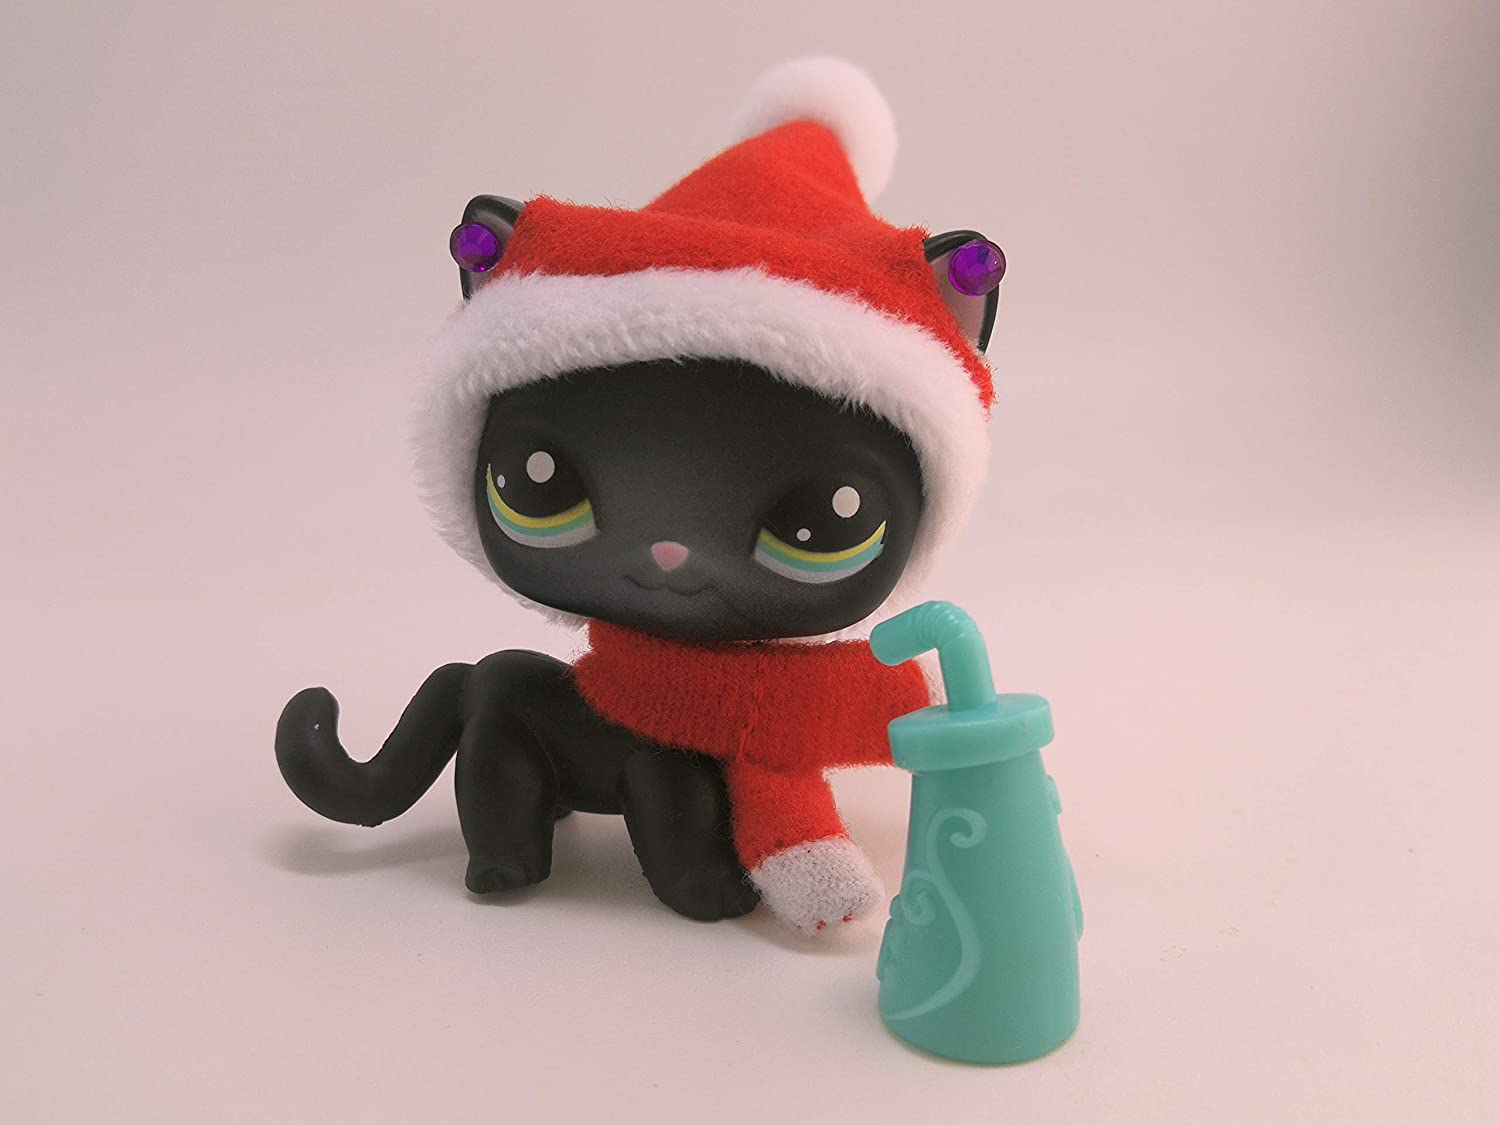 Toy Rare LPS Shorthair Cat 994 Black Kittey Kitten with Accessories Christmas Hat Scraf Collection Figure Girls Boys